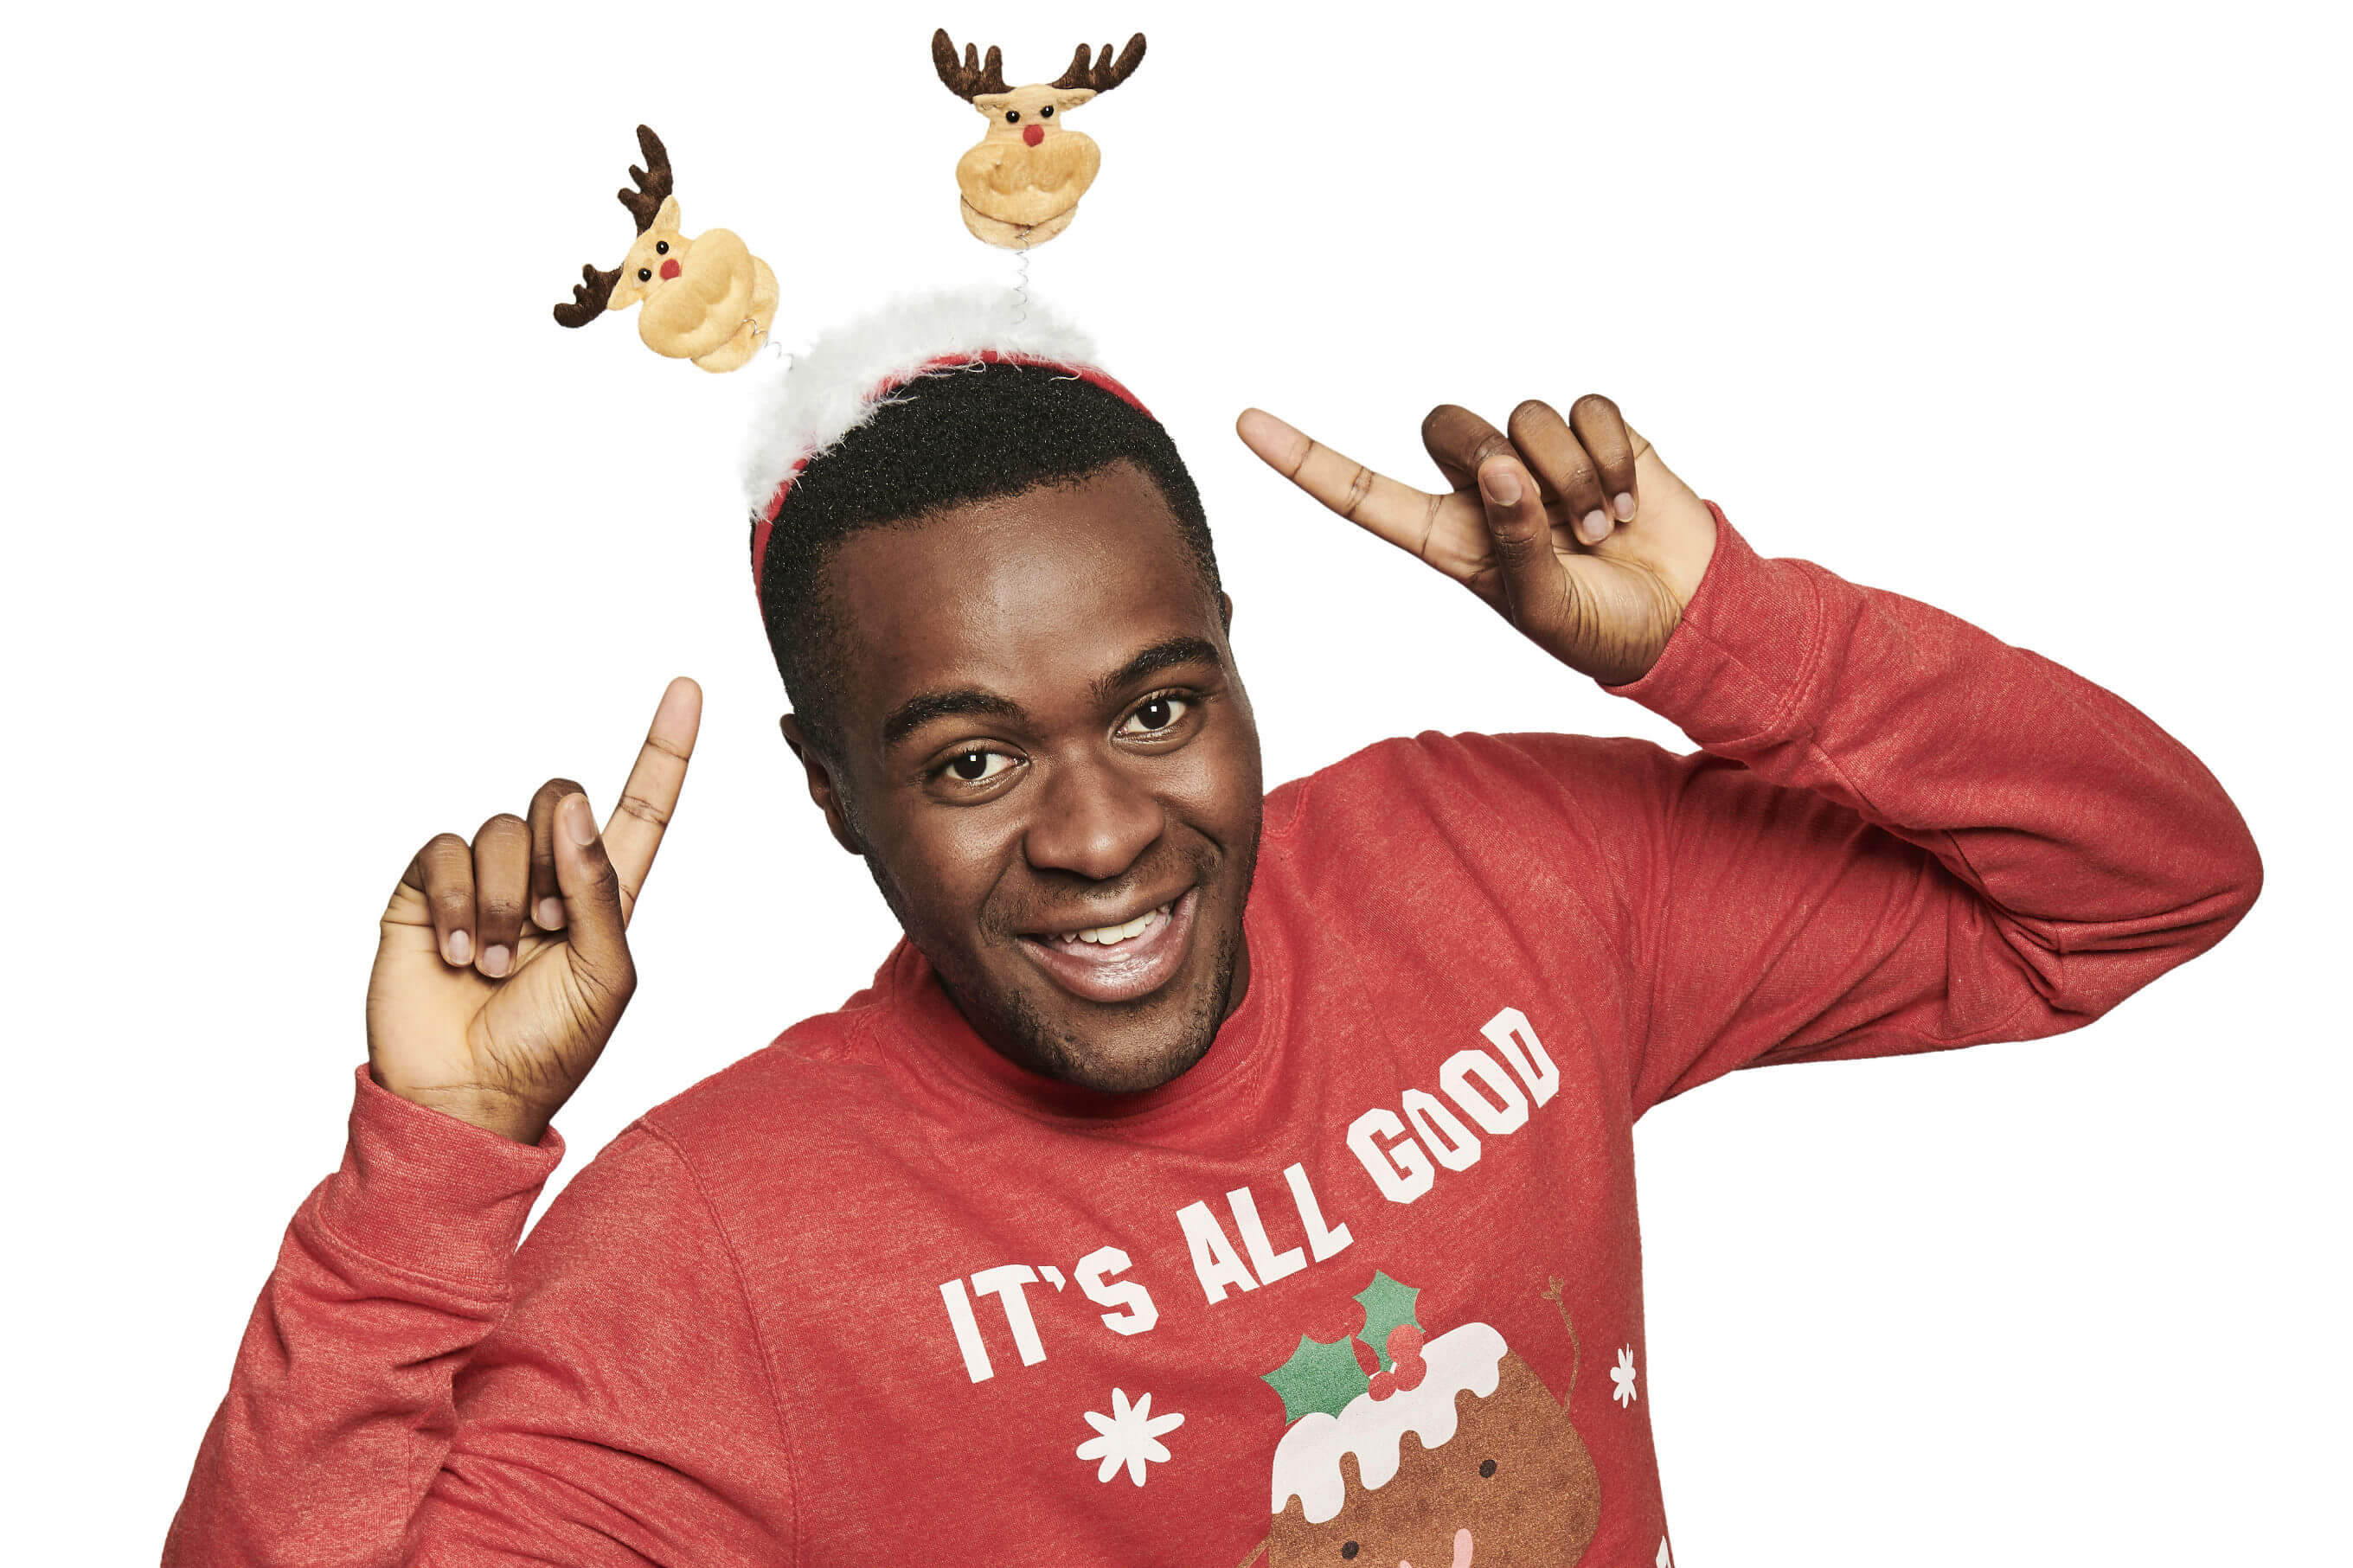 Bake Off's Liam Charles dresses in his it's all good in the pud Christmas Jumper for Save the Children's Christmas Jumper Day.